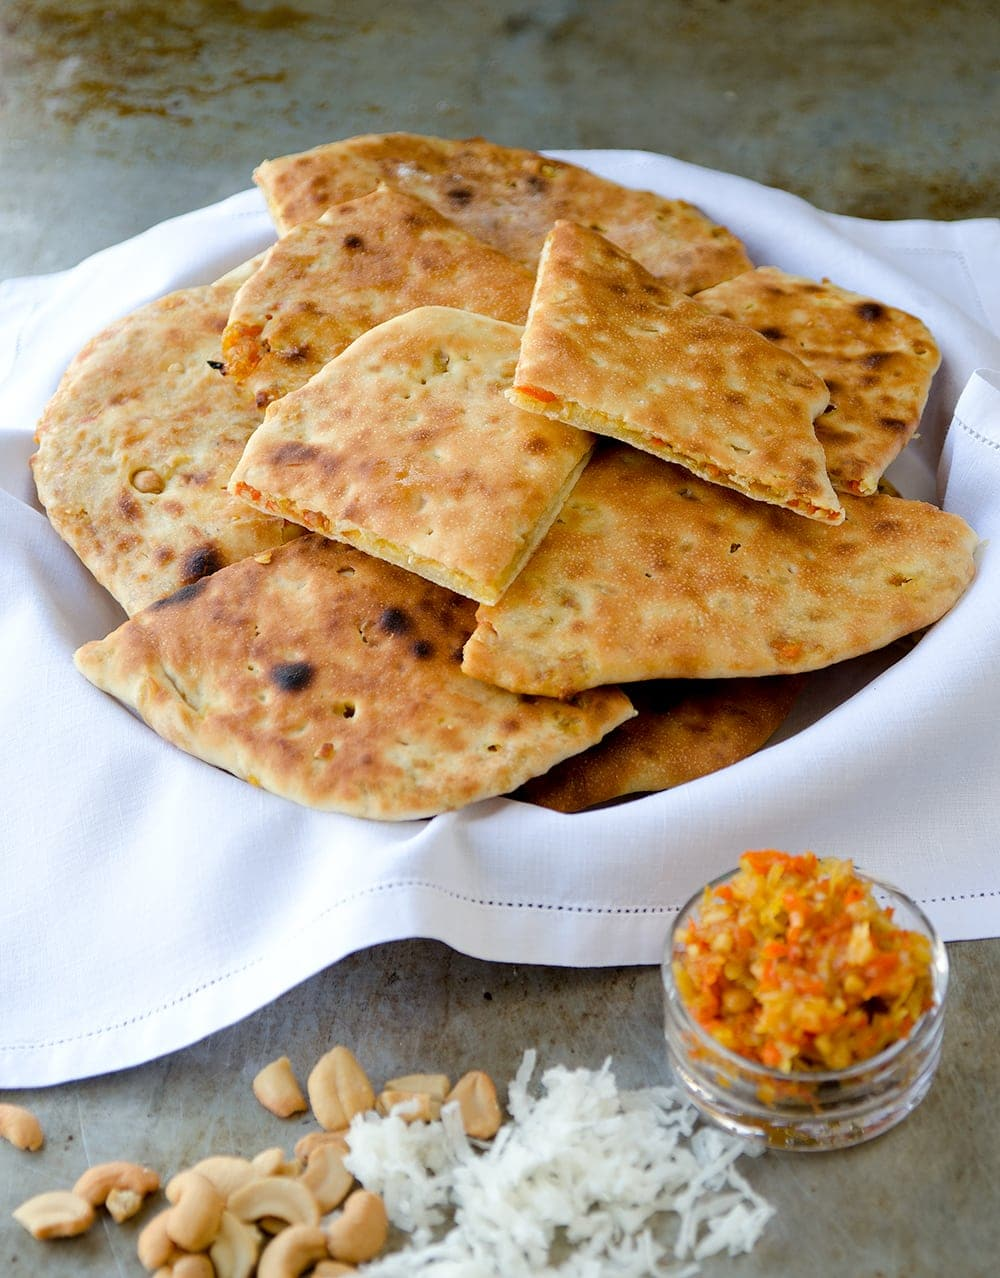 Royal Special Naan 2 Web - Stuffed Naan Recipe with Candied Carrots, Cashews and Coconut